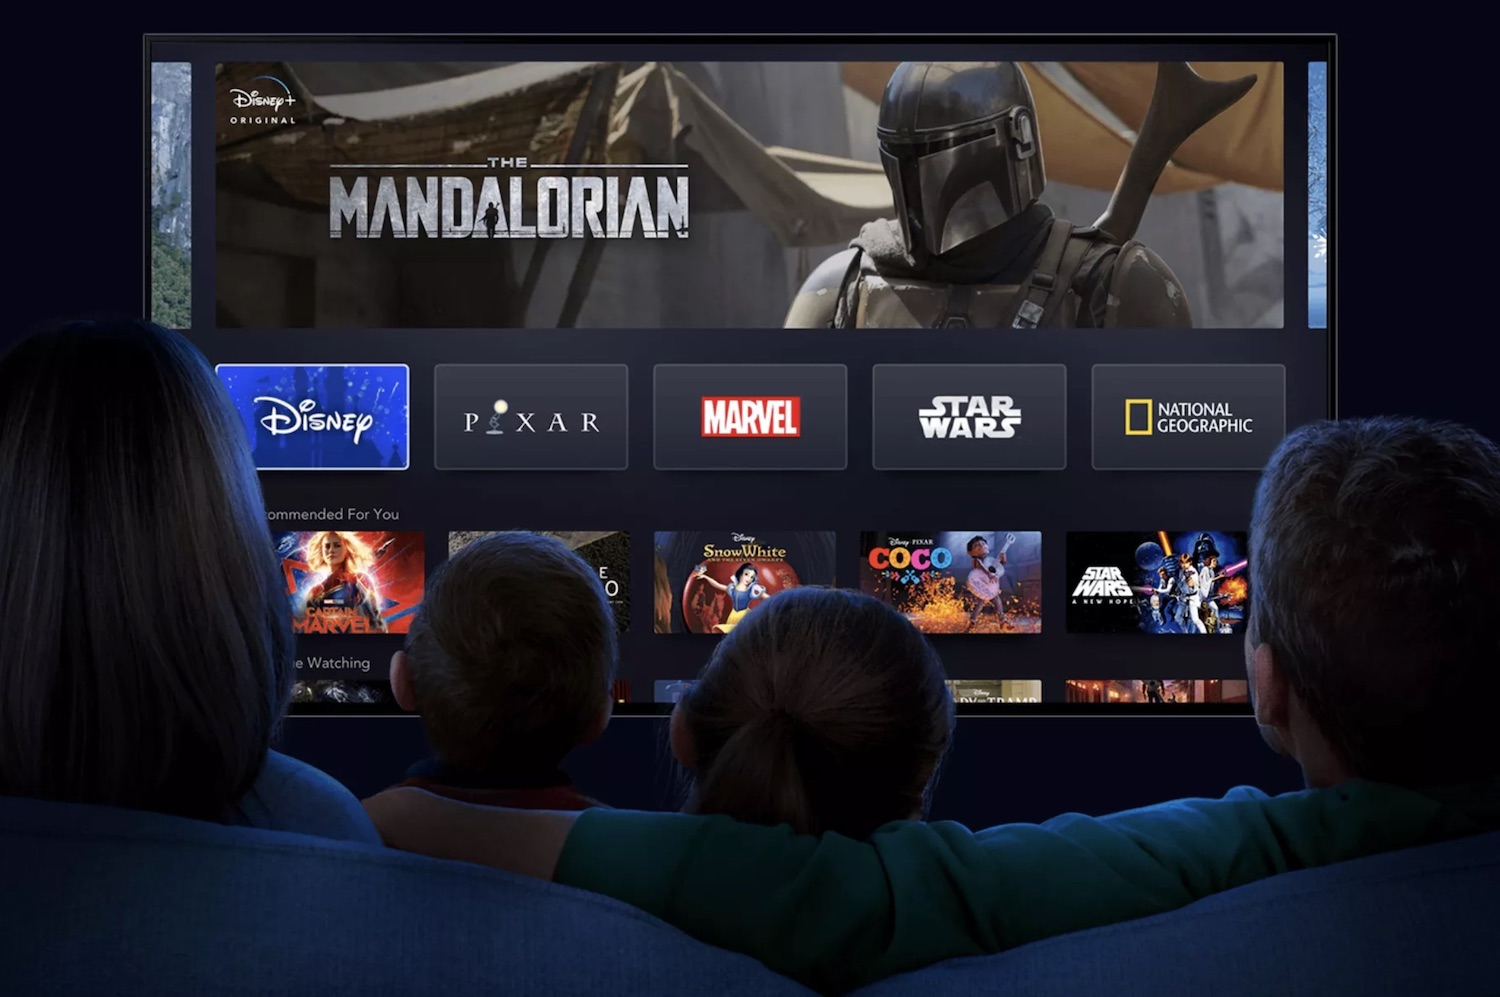 L'abbonamento base di Disney+ includerà 4 stream contemporanei e il 4K